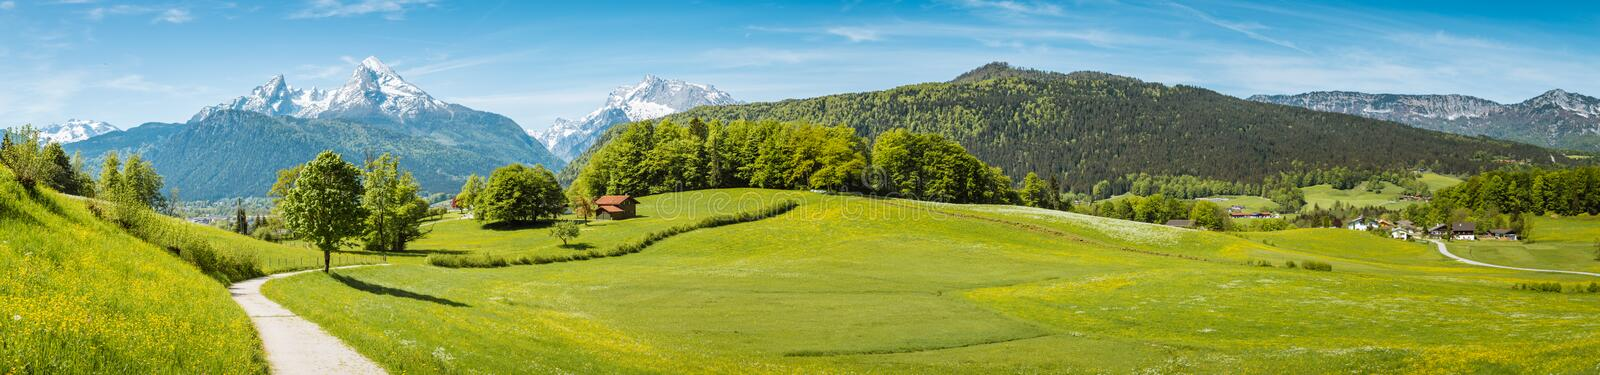 Idyllic spring landscape in the Alps with meadows and flowers royalty free stock image